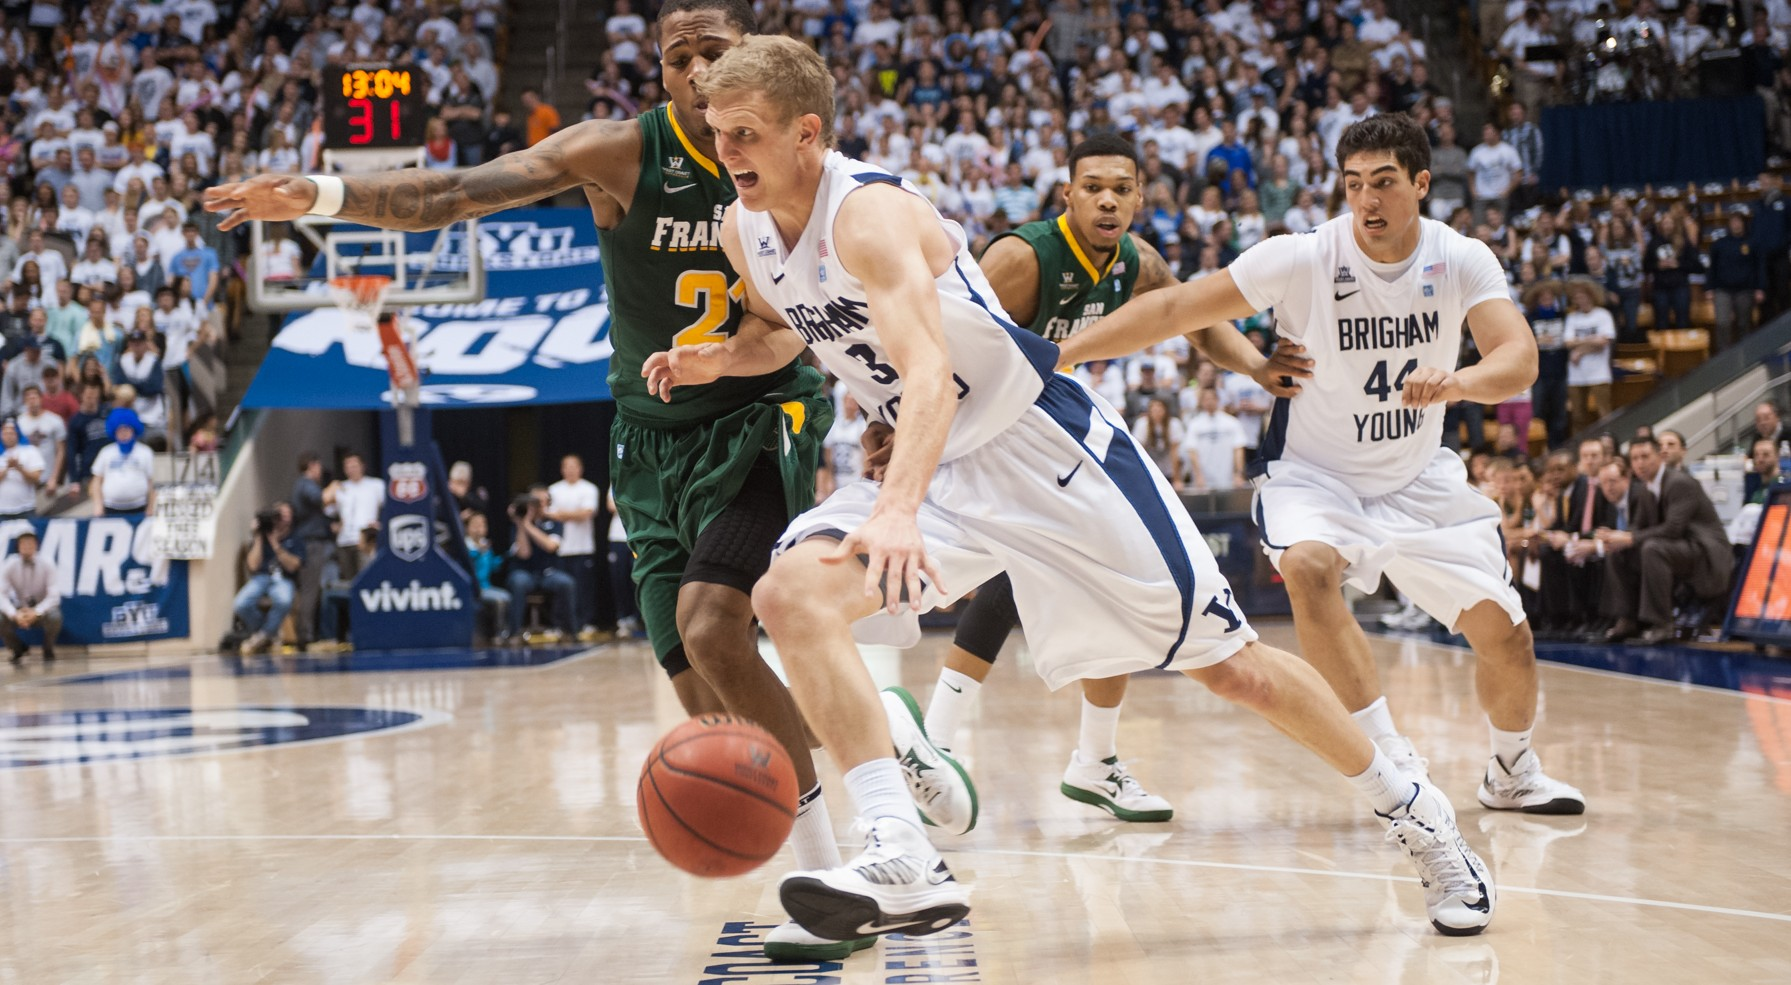 Tyler Haws dribbles by San Francisco defender De'End Parker during last year's game in the Marriott Center. Photo by Chris Bunker.